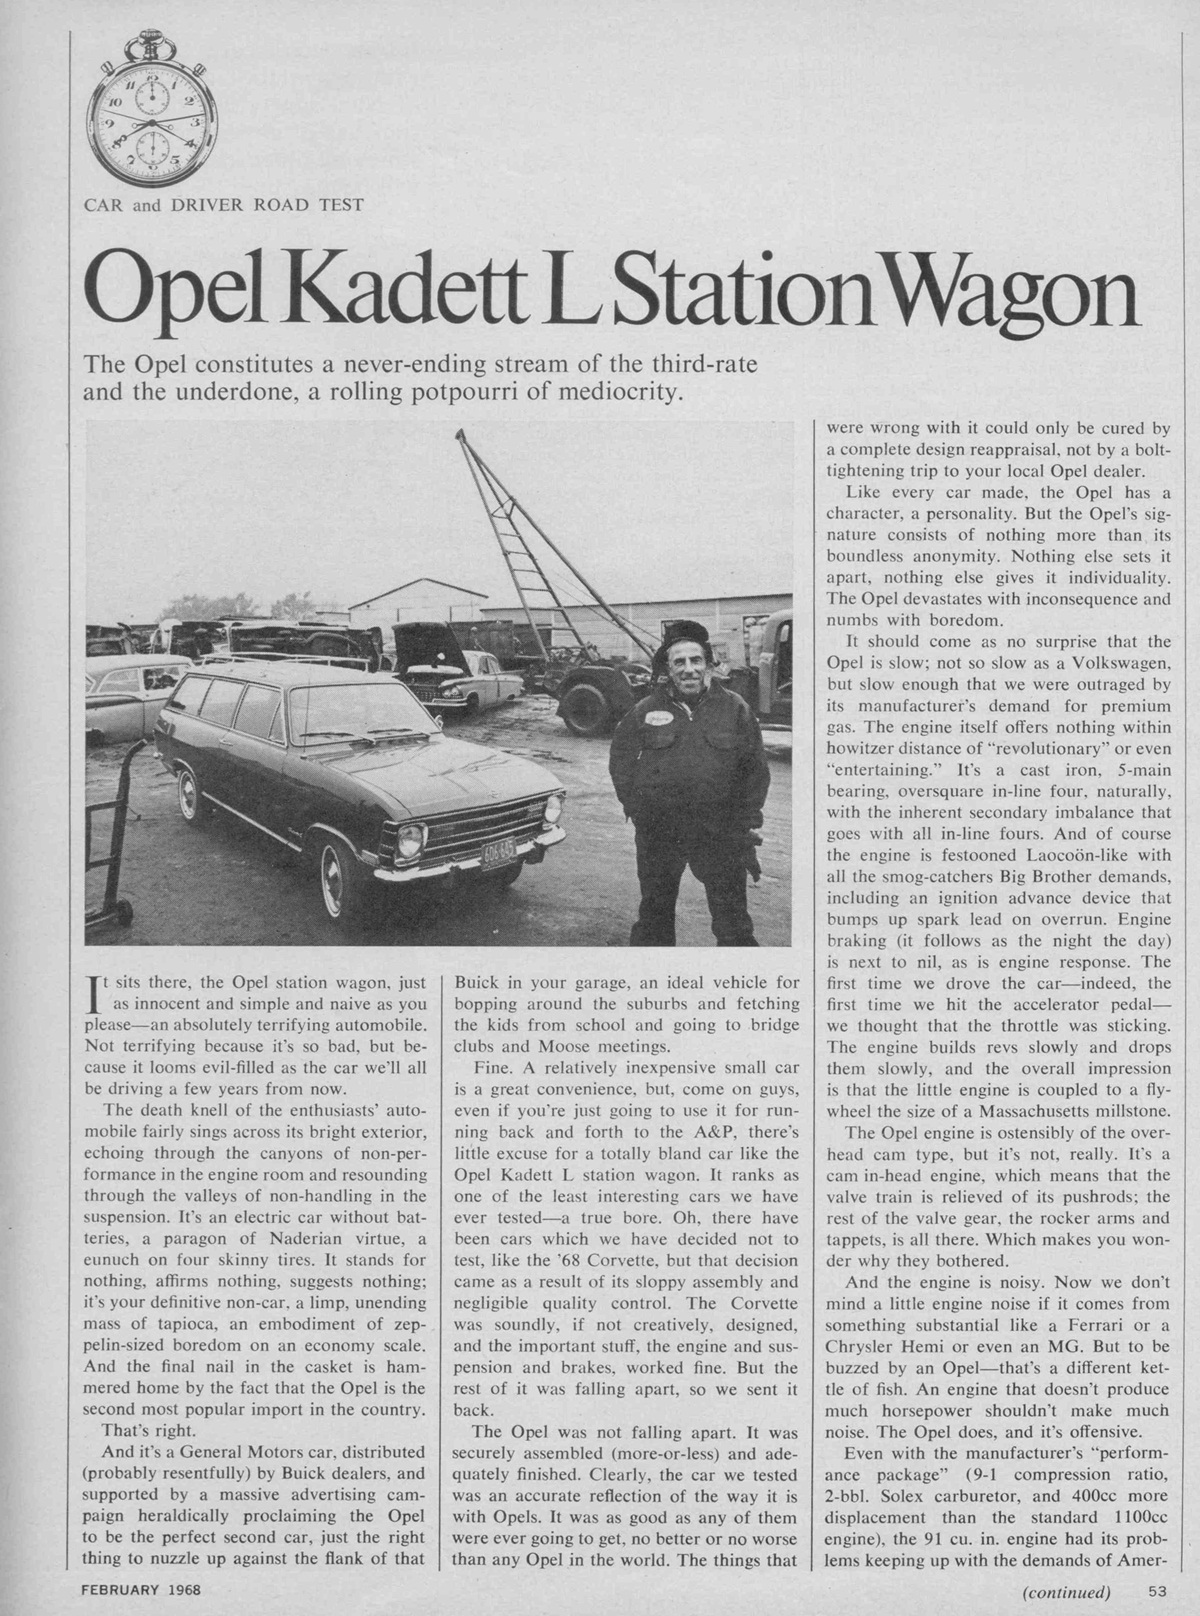 The Opel Kadett Asassination By Car And Driver